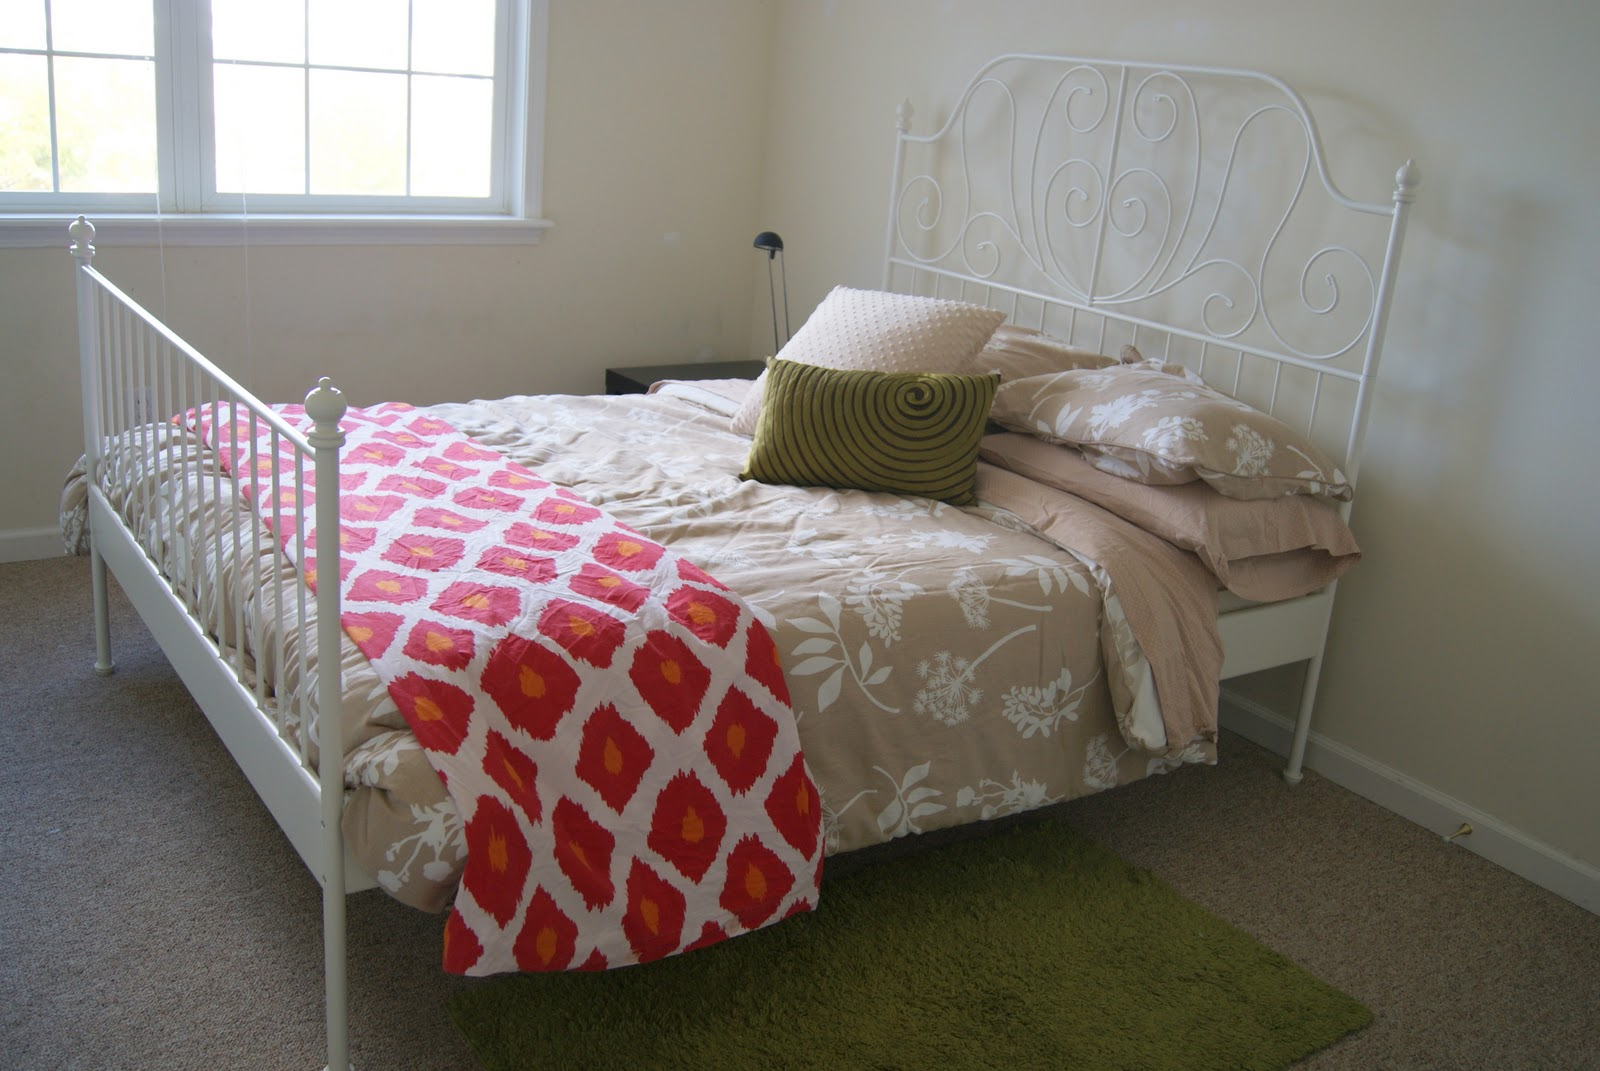 House Pour How To Build A Guest Room In One Day For